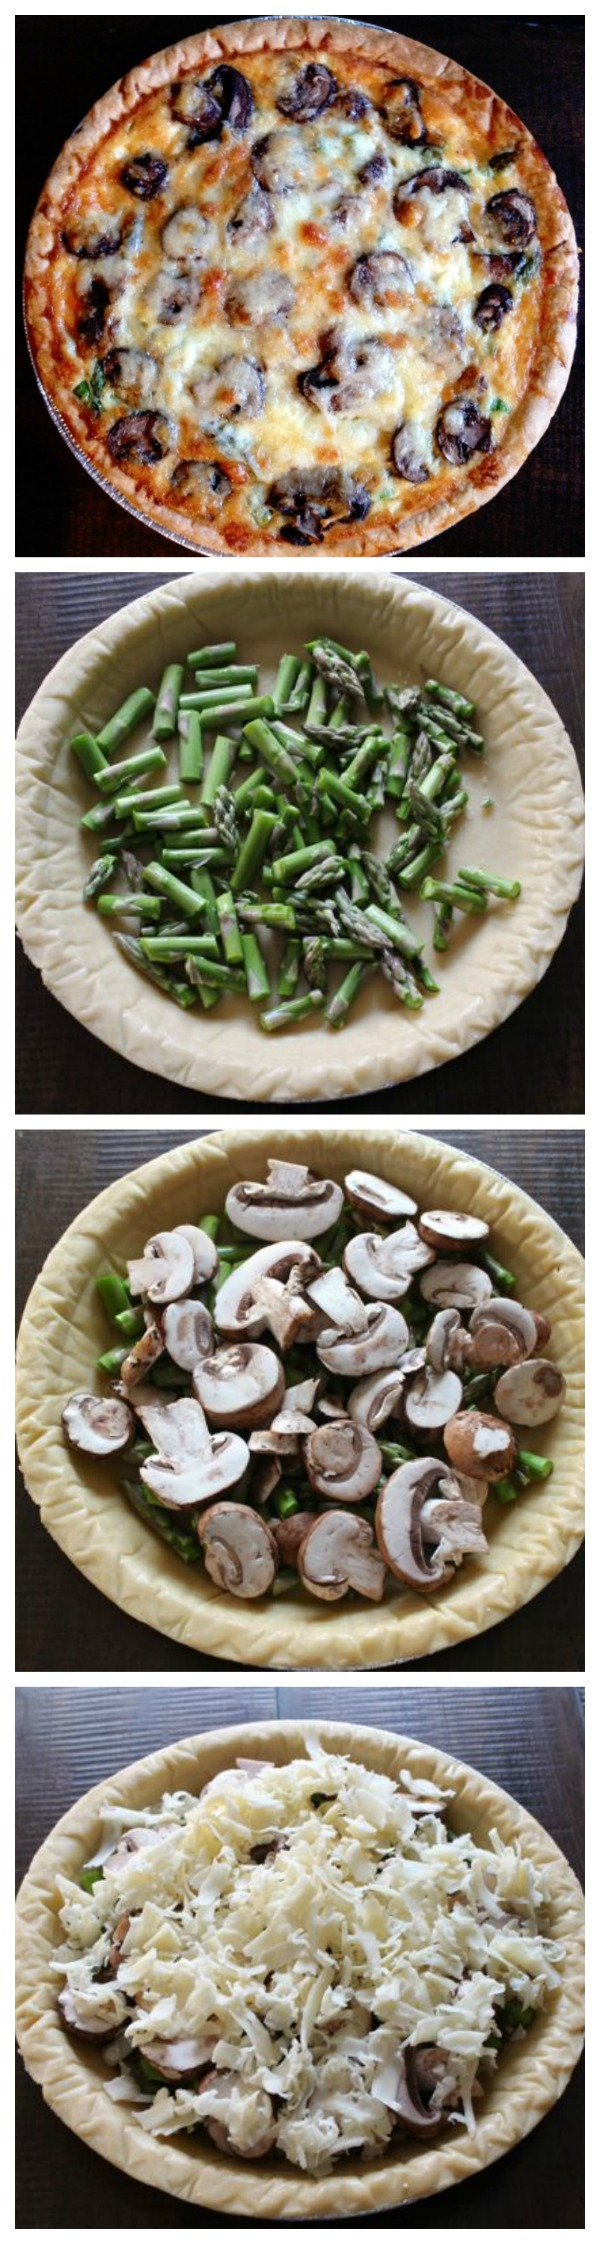 Easy quiche recipe with asparagus mushrooms and cheddar thekittchen asparagus mushroom cheddar easy quiche recipe forumfinder Choice Image